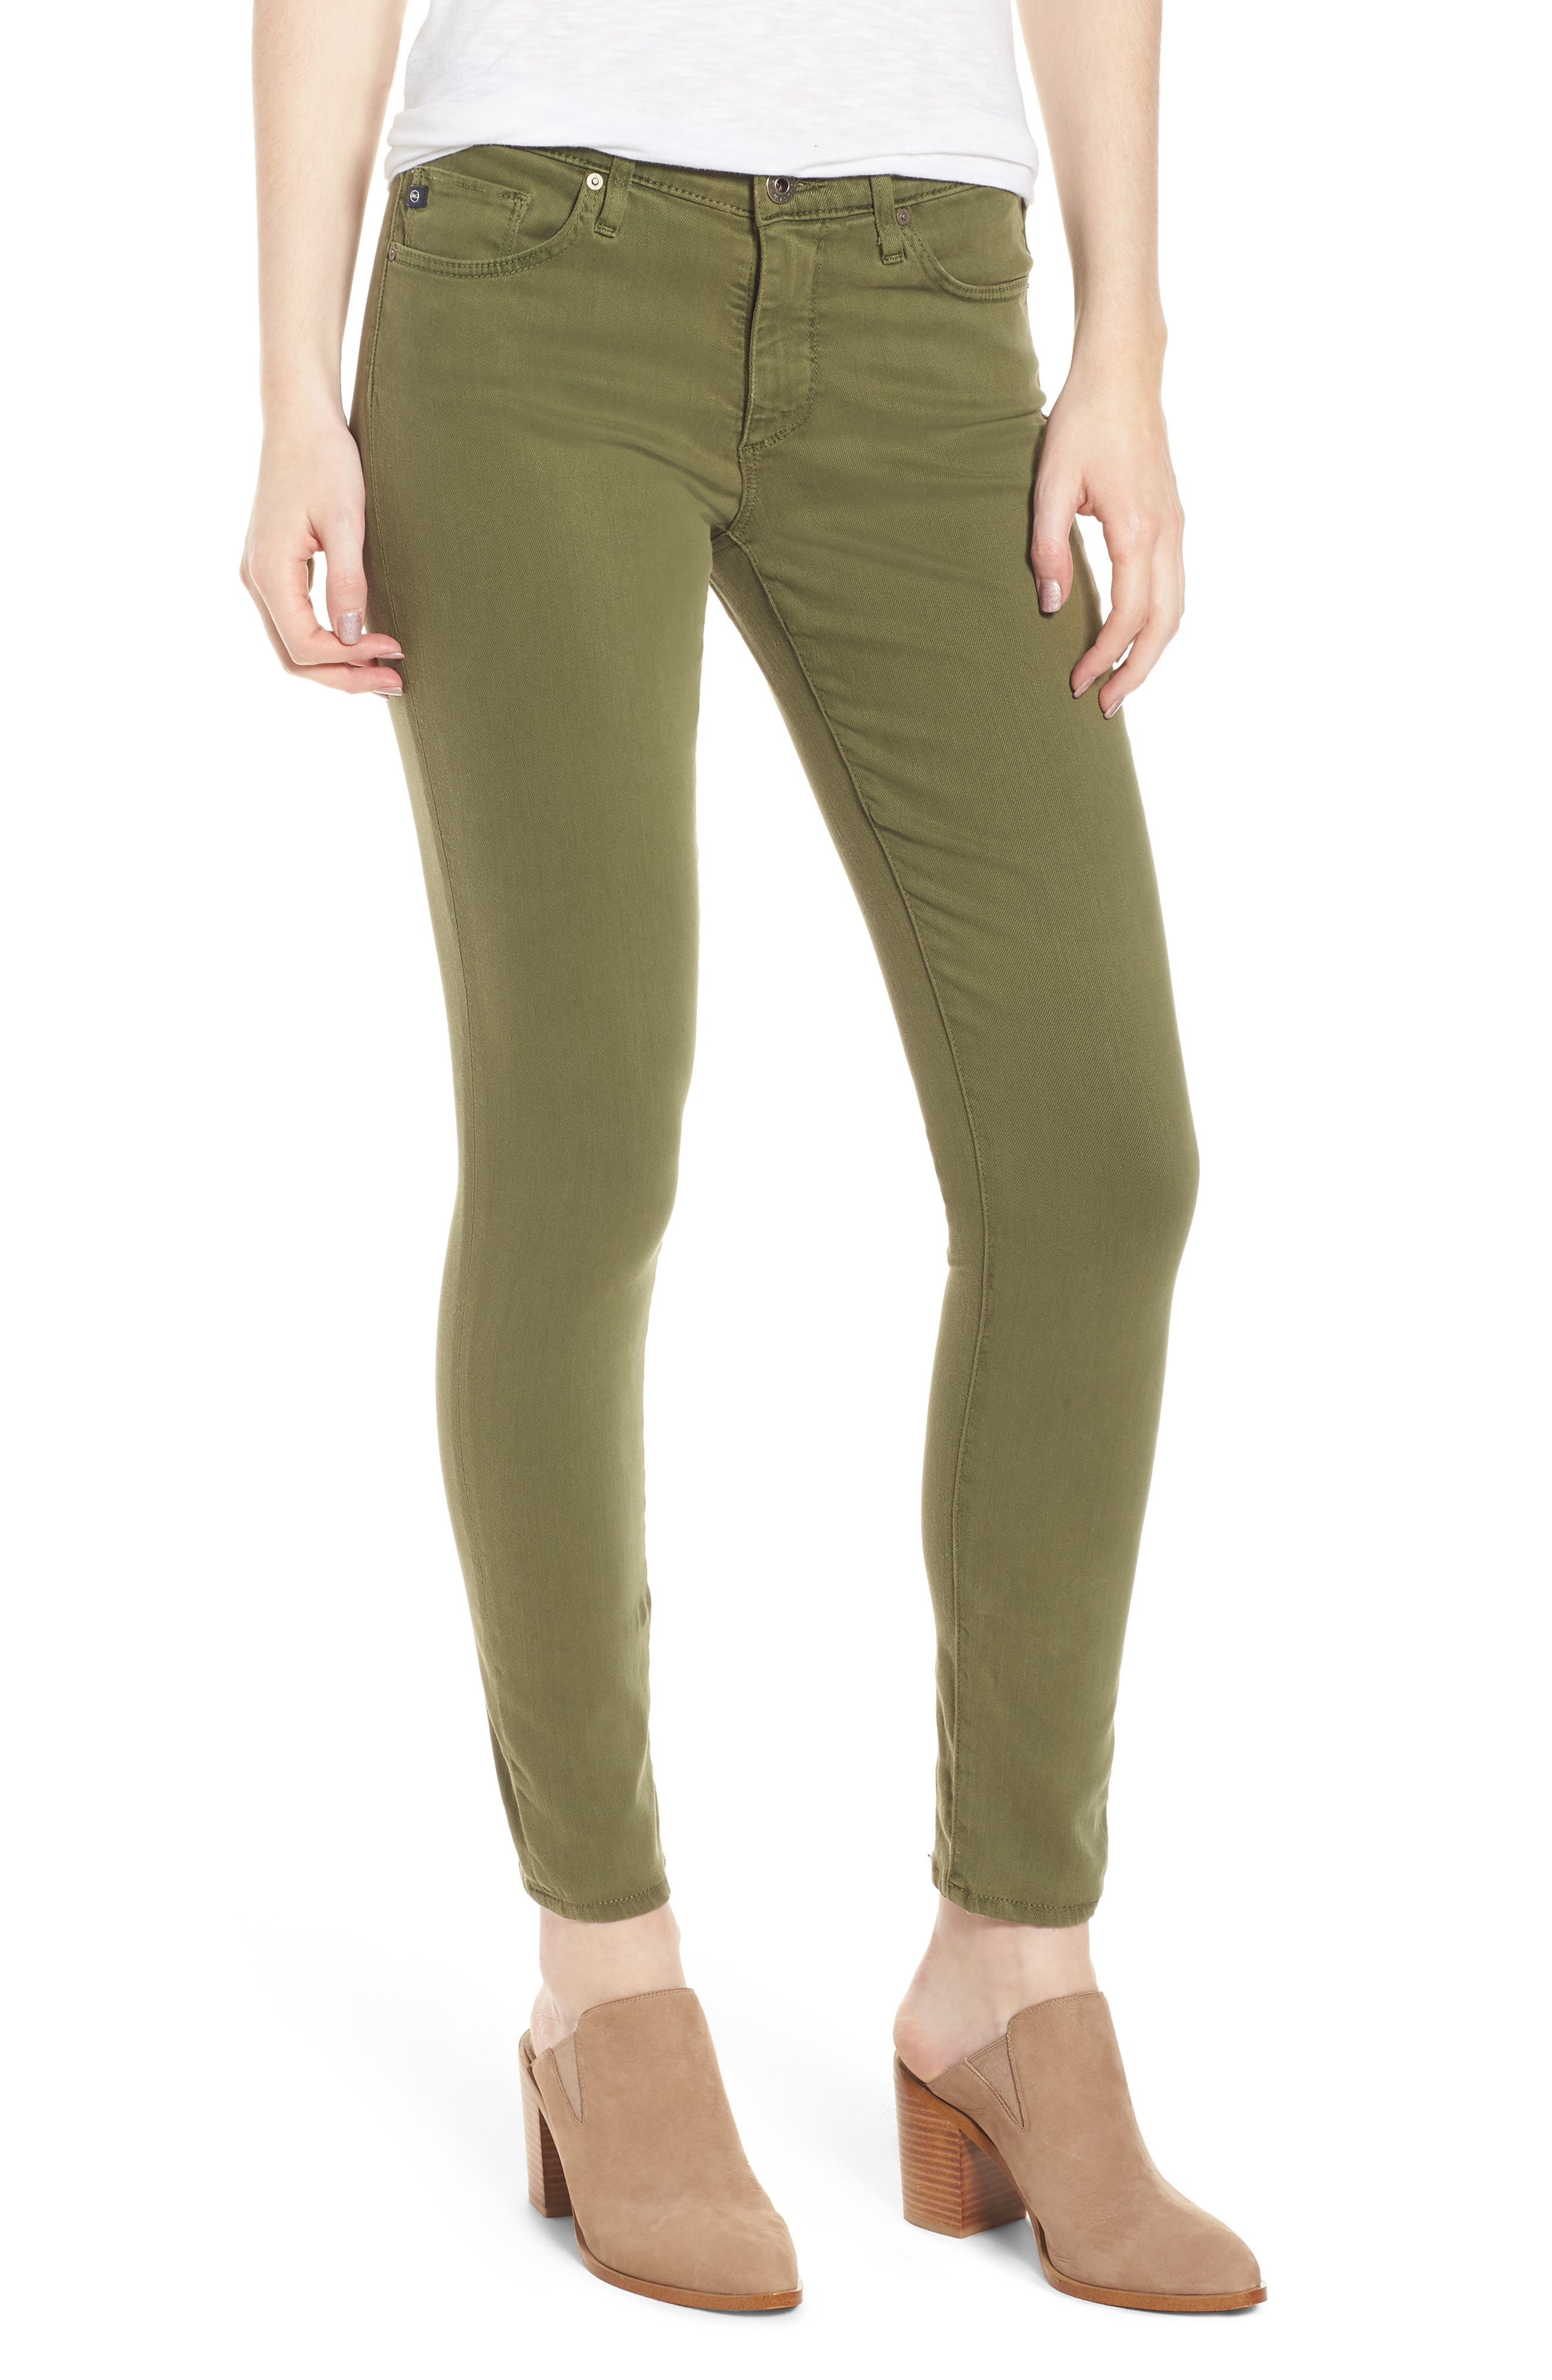 'The Legging' Ankle Jeans,                             Main thumbnail 1, color,                             Sulfur Olive Grove